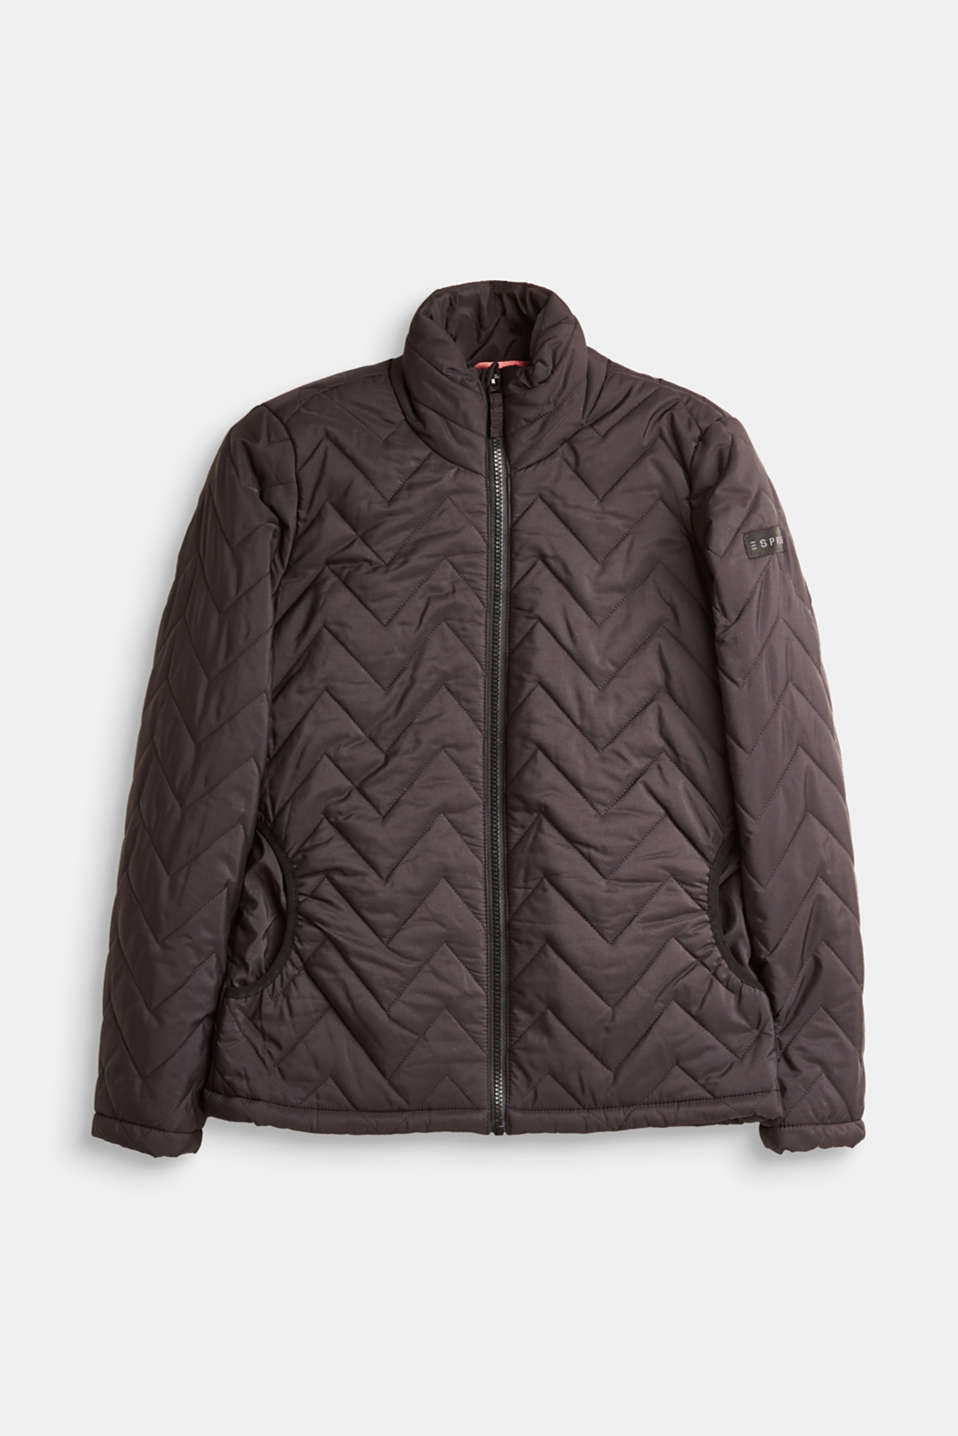 Esprit - Lightweight quilted jacket with a stand-up collar